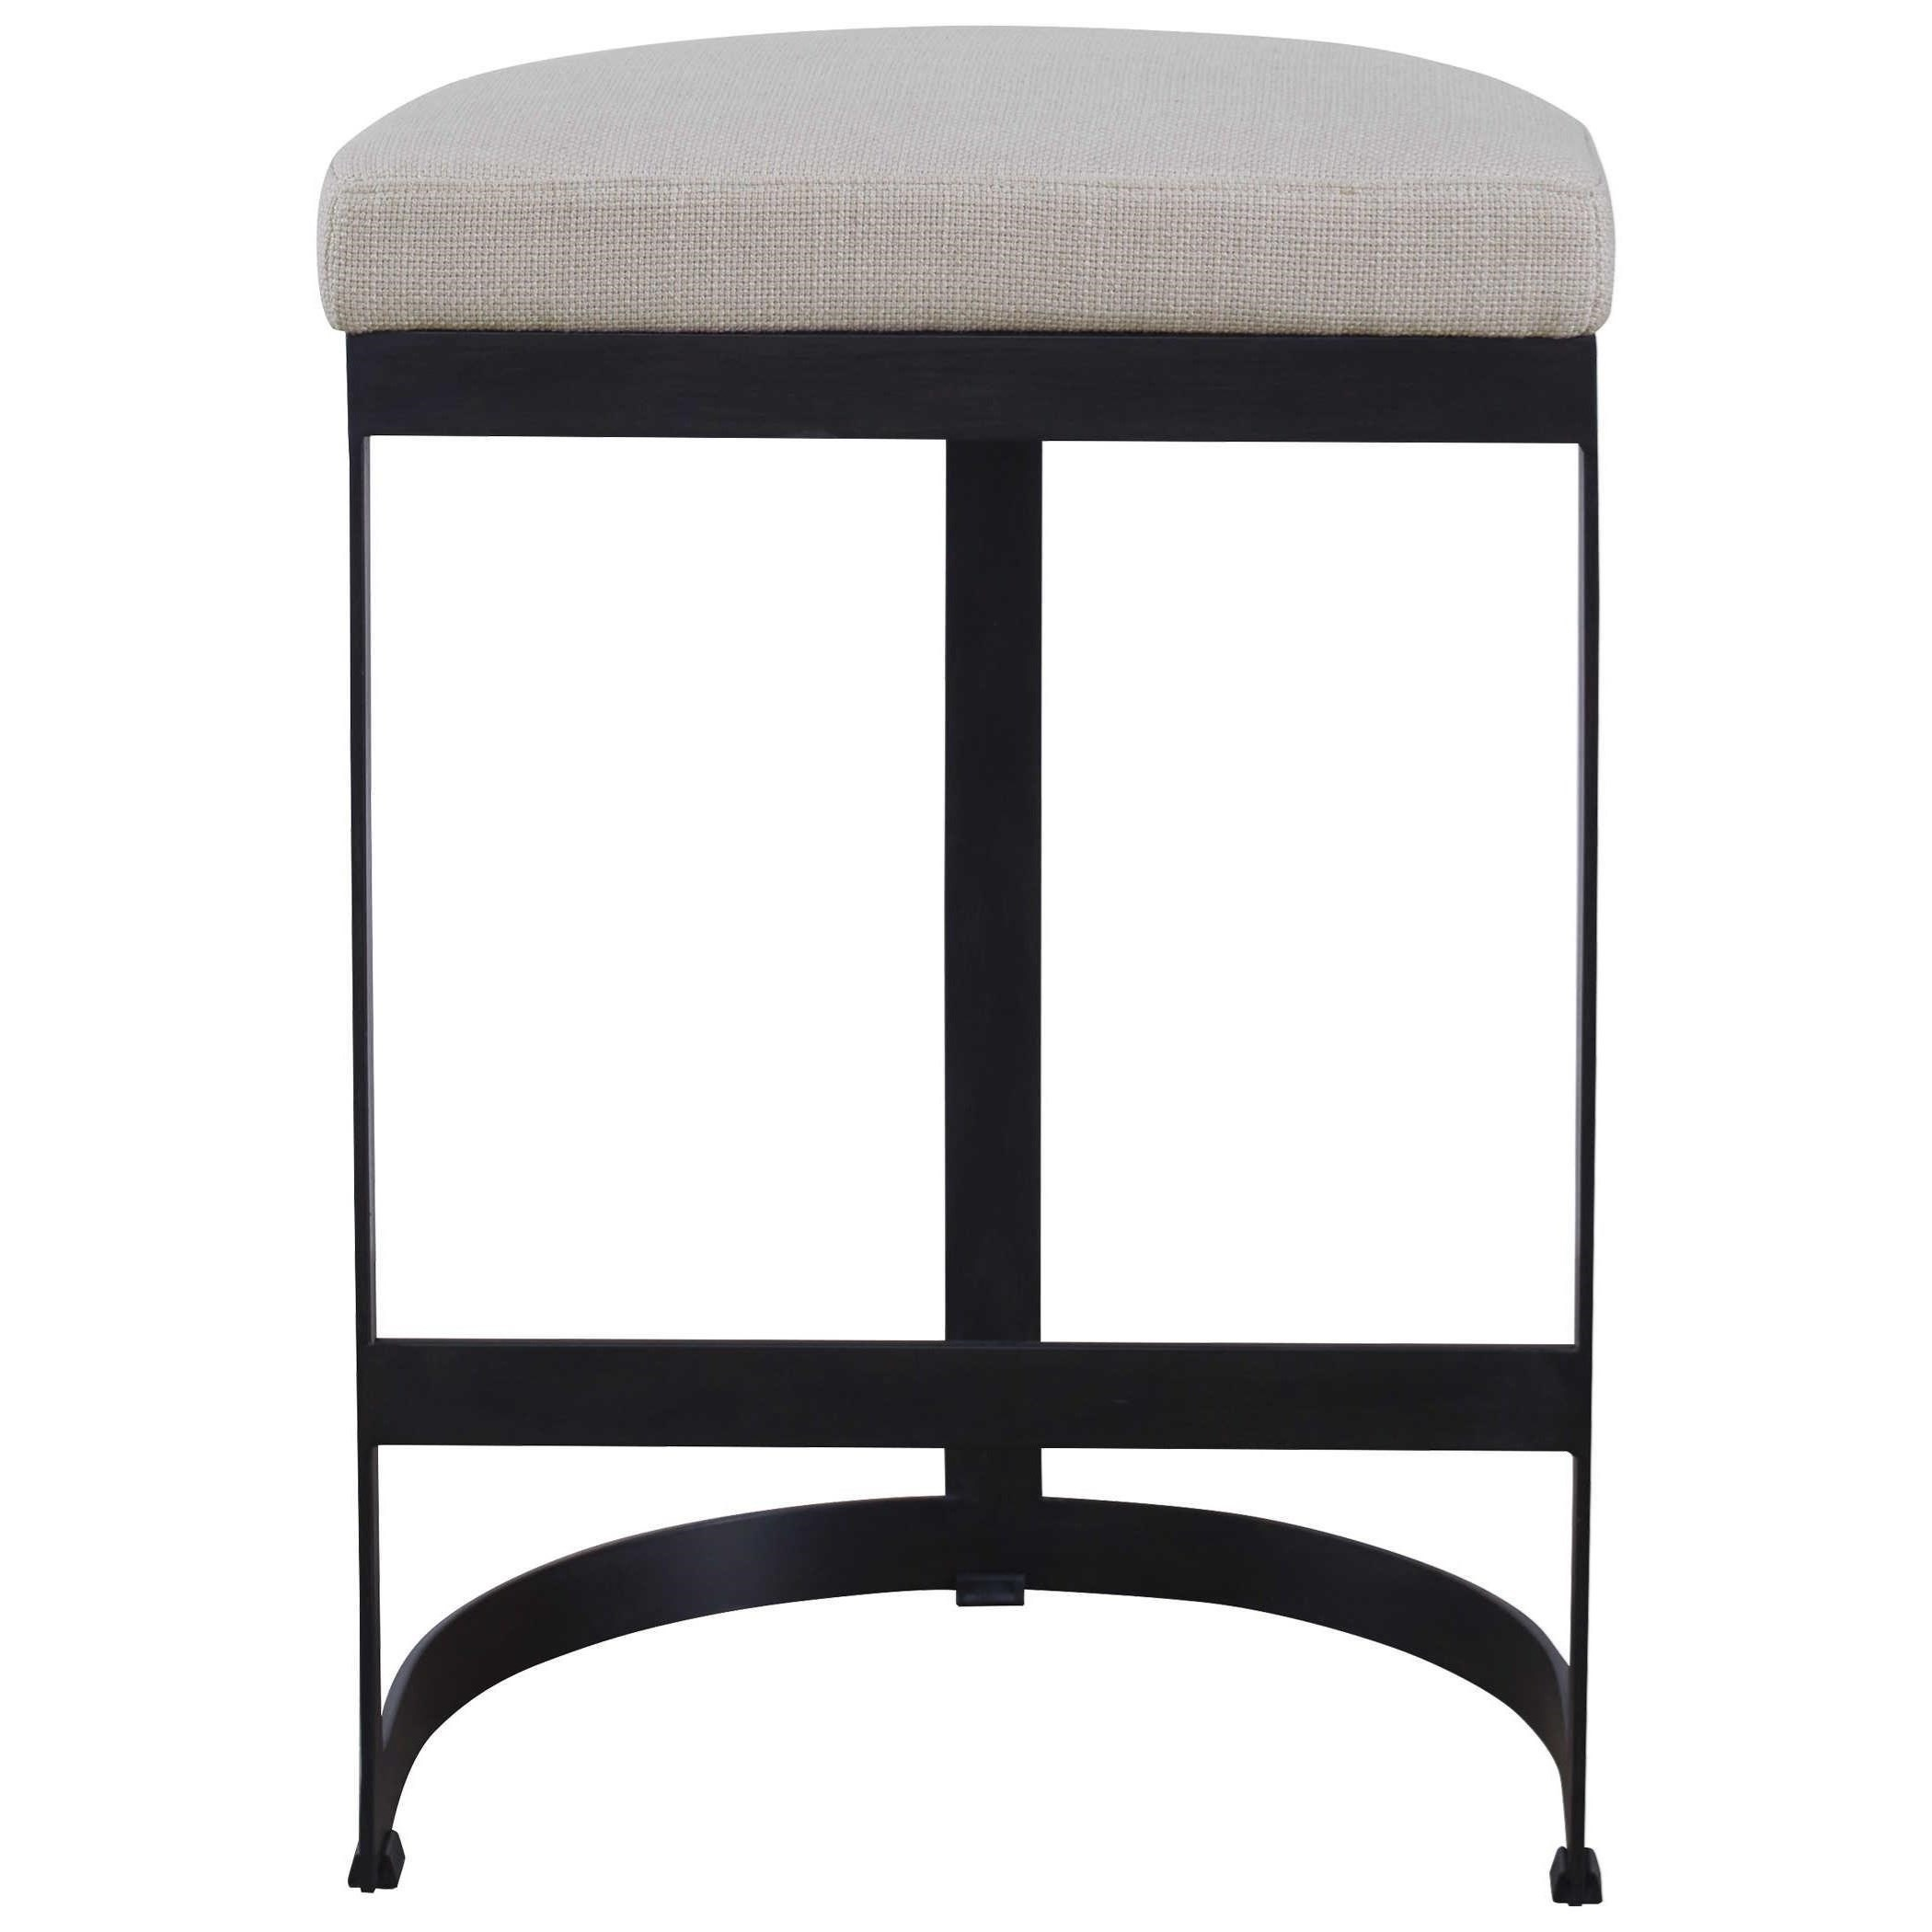 Accent Furniture - Stools Ivanna Black Iron Counter Stool by Uttermost at Mueller Furniture